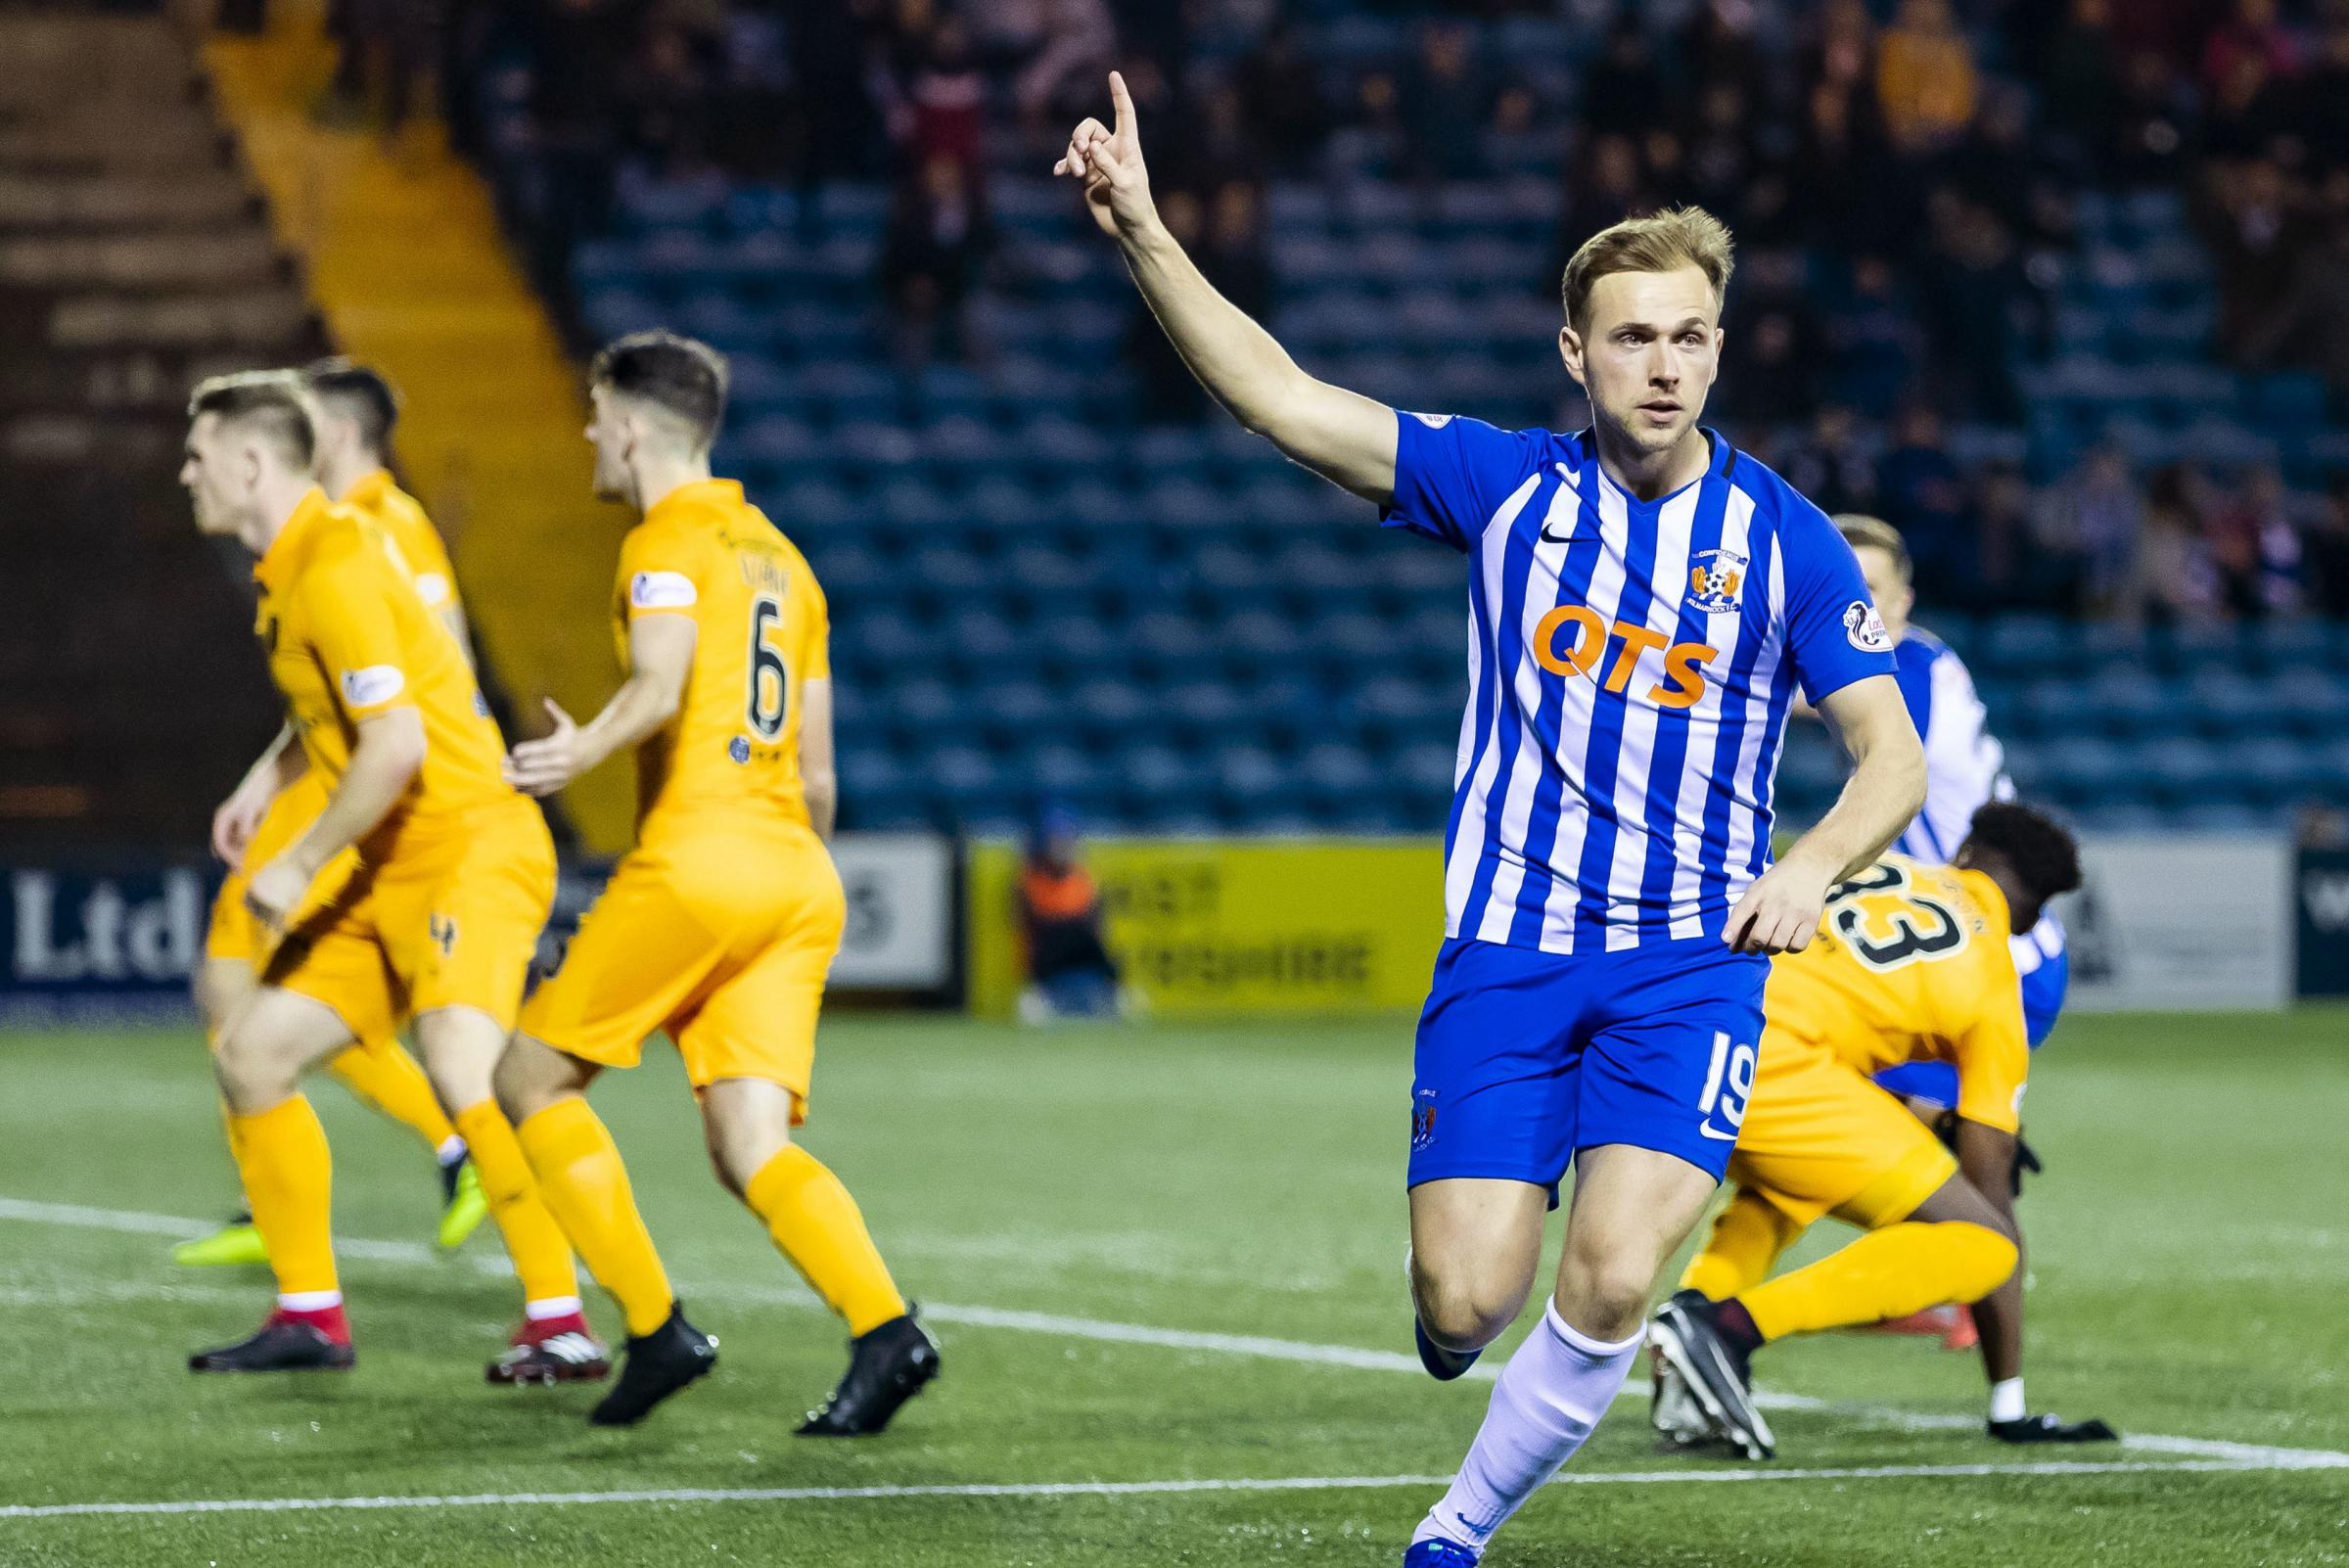 Rangers striker Greg Stewart hopes he gets a warm welcome from Kilmarnock fans on his Rugby Park return